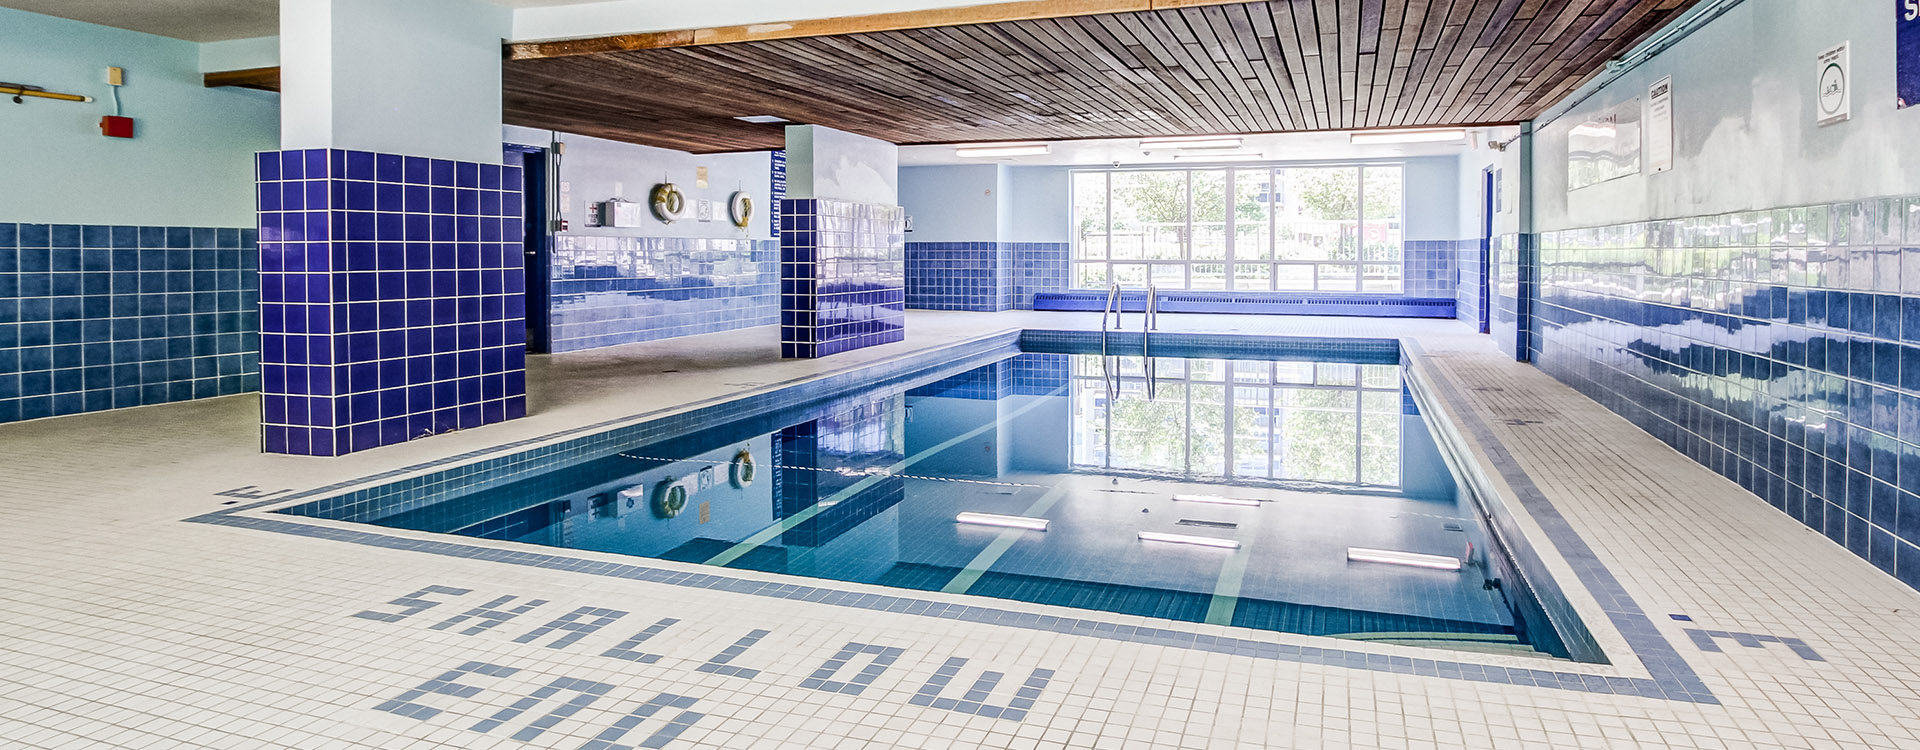 Indoor swimming pool at Richgrove Apartments in Toronto. Rent with Minto Apartments.